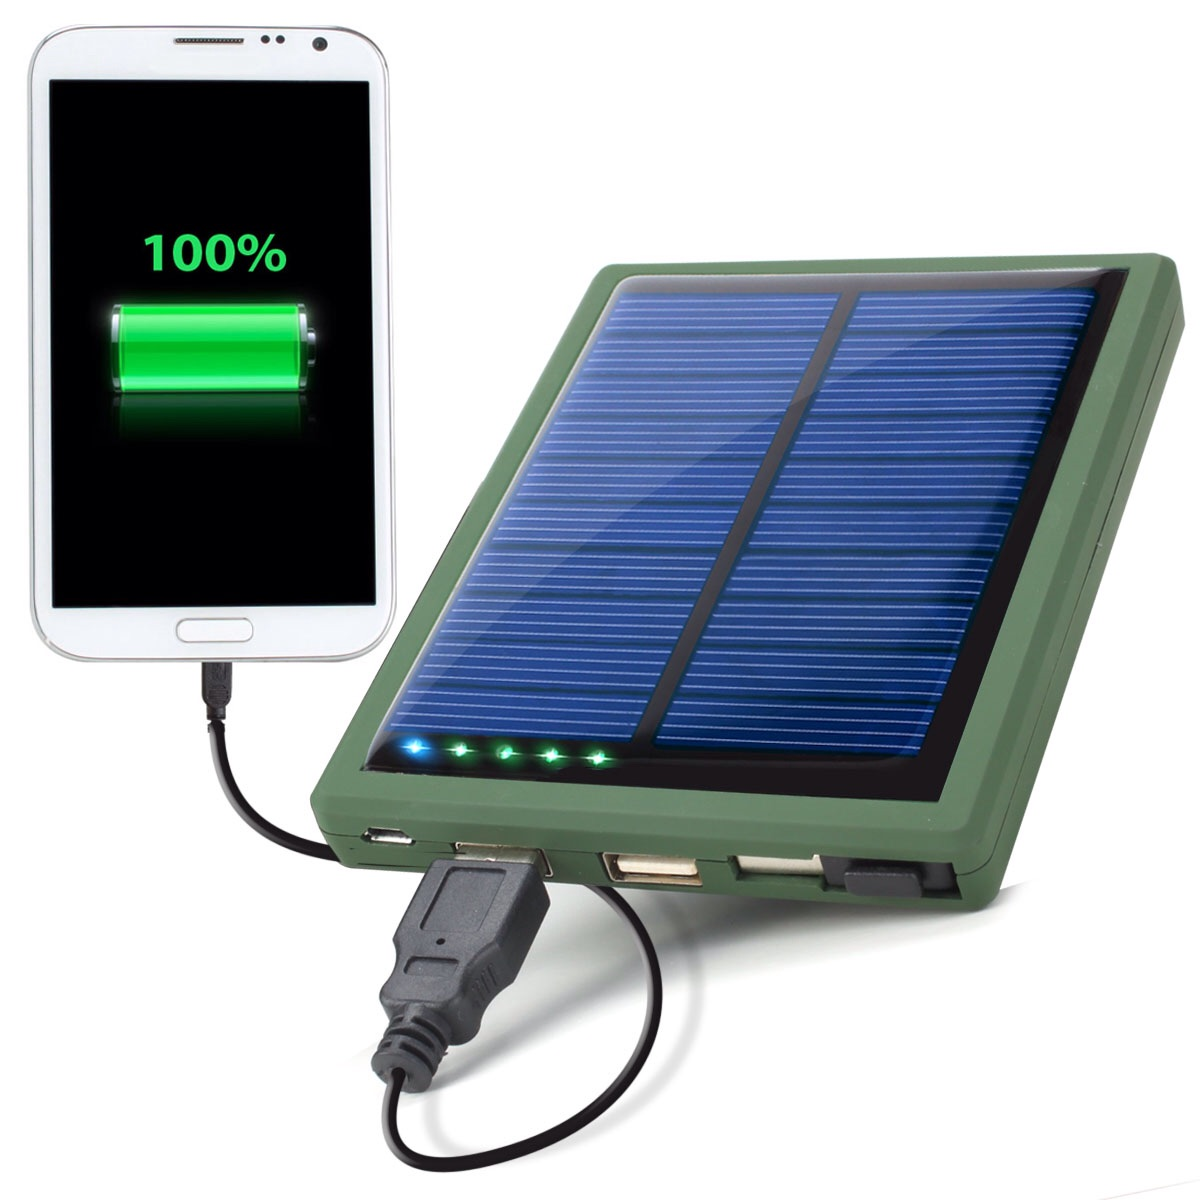 Cargador Bateria Solar Universal para Moviles Iphone, Android MP4, PSP, 5000 mAh